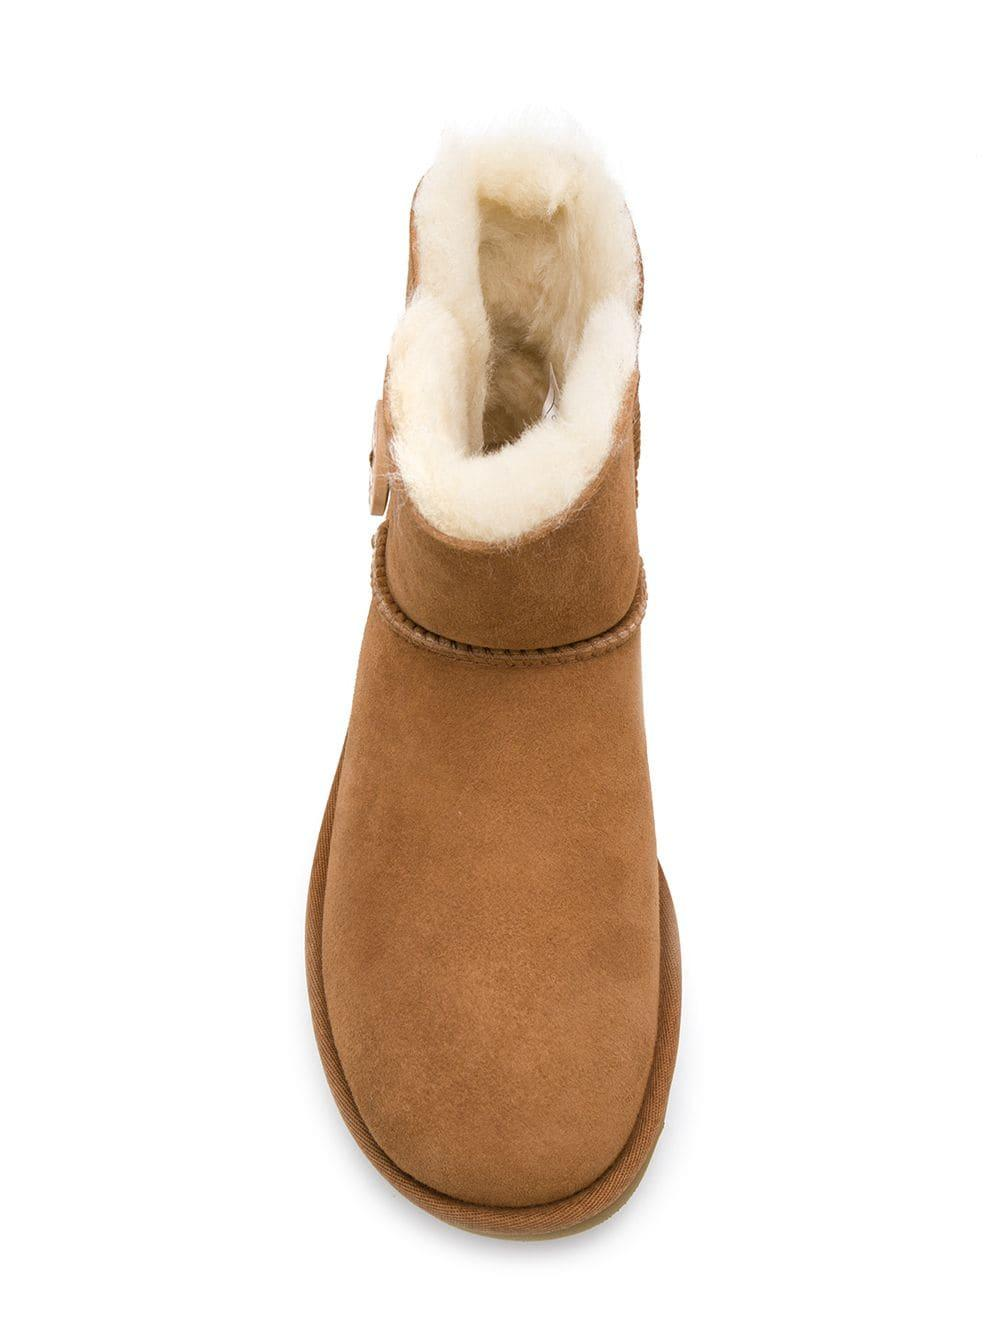 Botas Bailey mini UGG de Caucho de color Marrón